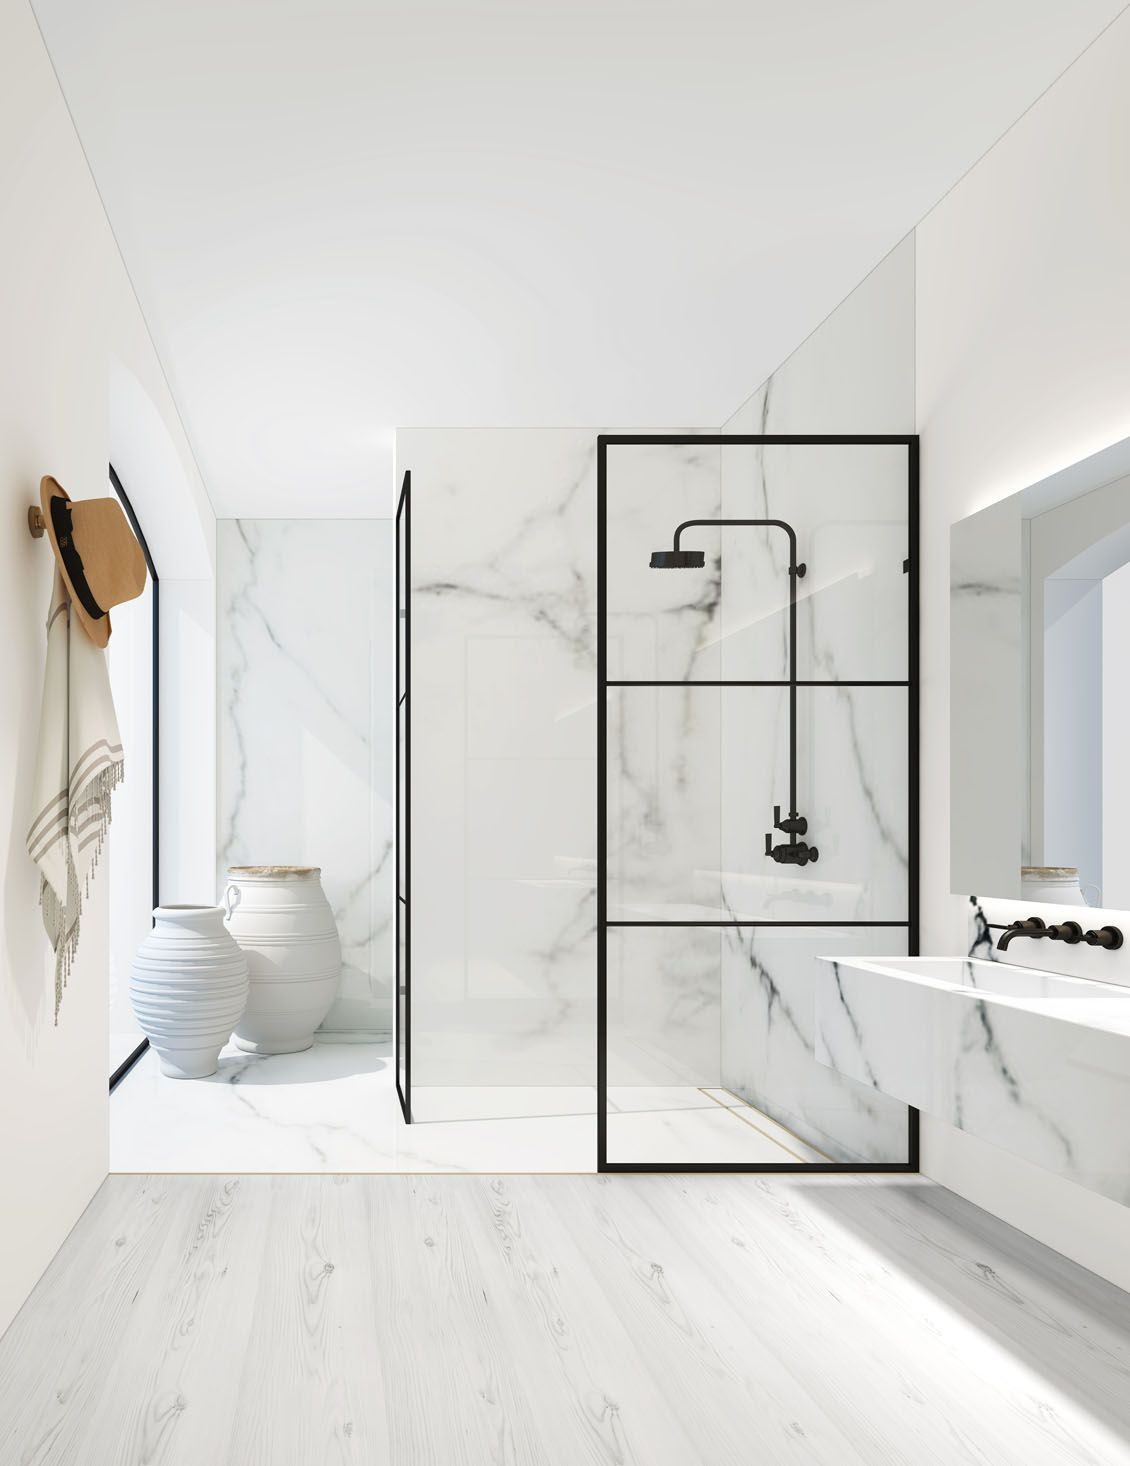 New At Alternative Bathrooms Majestic S Metalcraft Shower Screens Offer A Linear Architectura White Marble Bathrooms Monochrome Bathroom Bathroom Inspiration